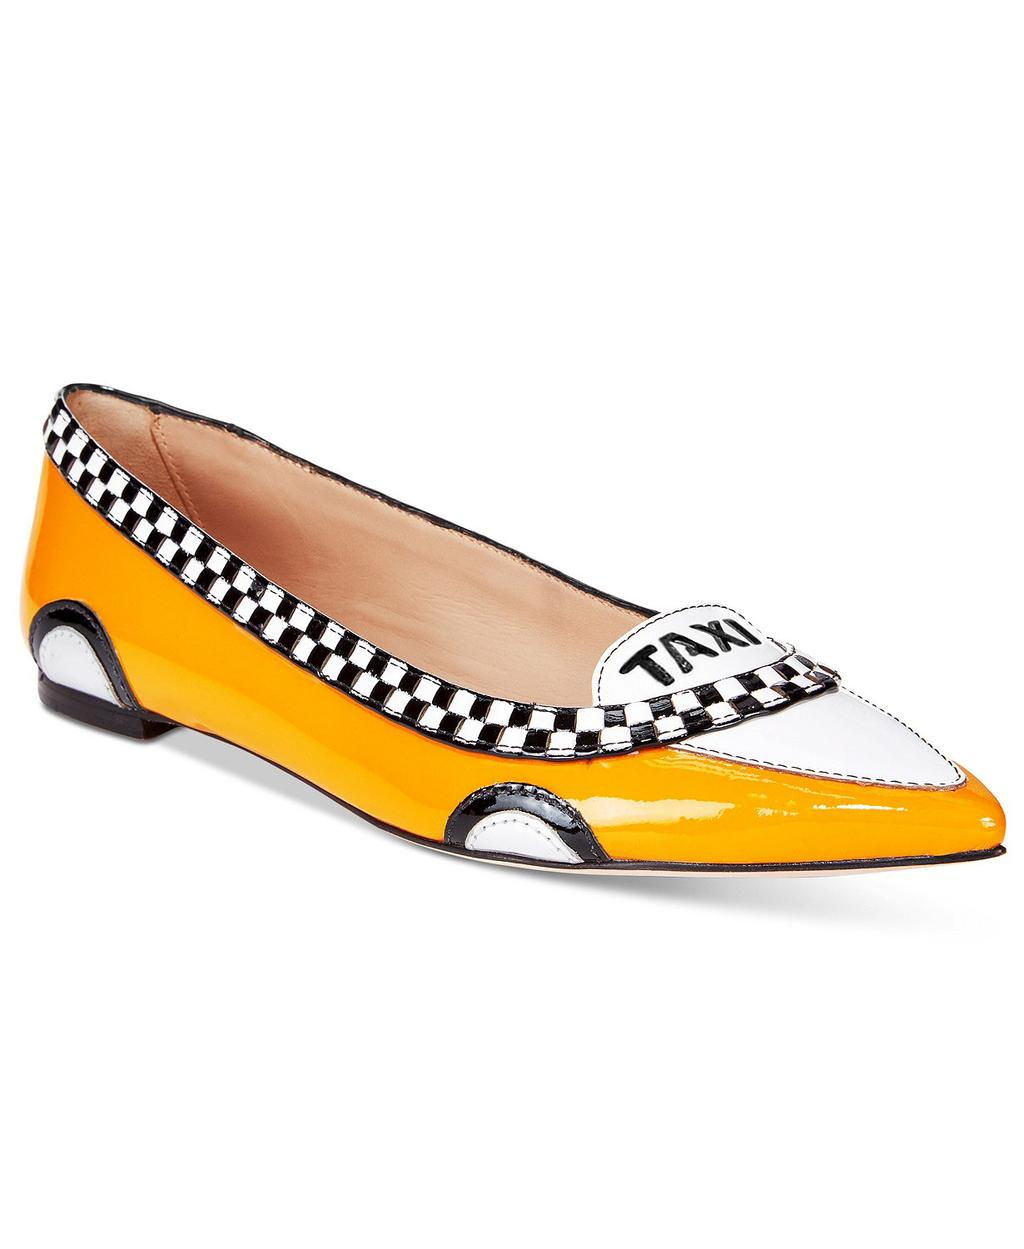 Chaussures Go Taxi, 365$ chez Macy's